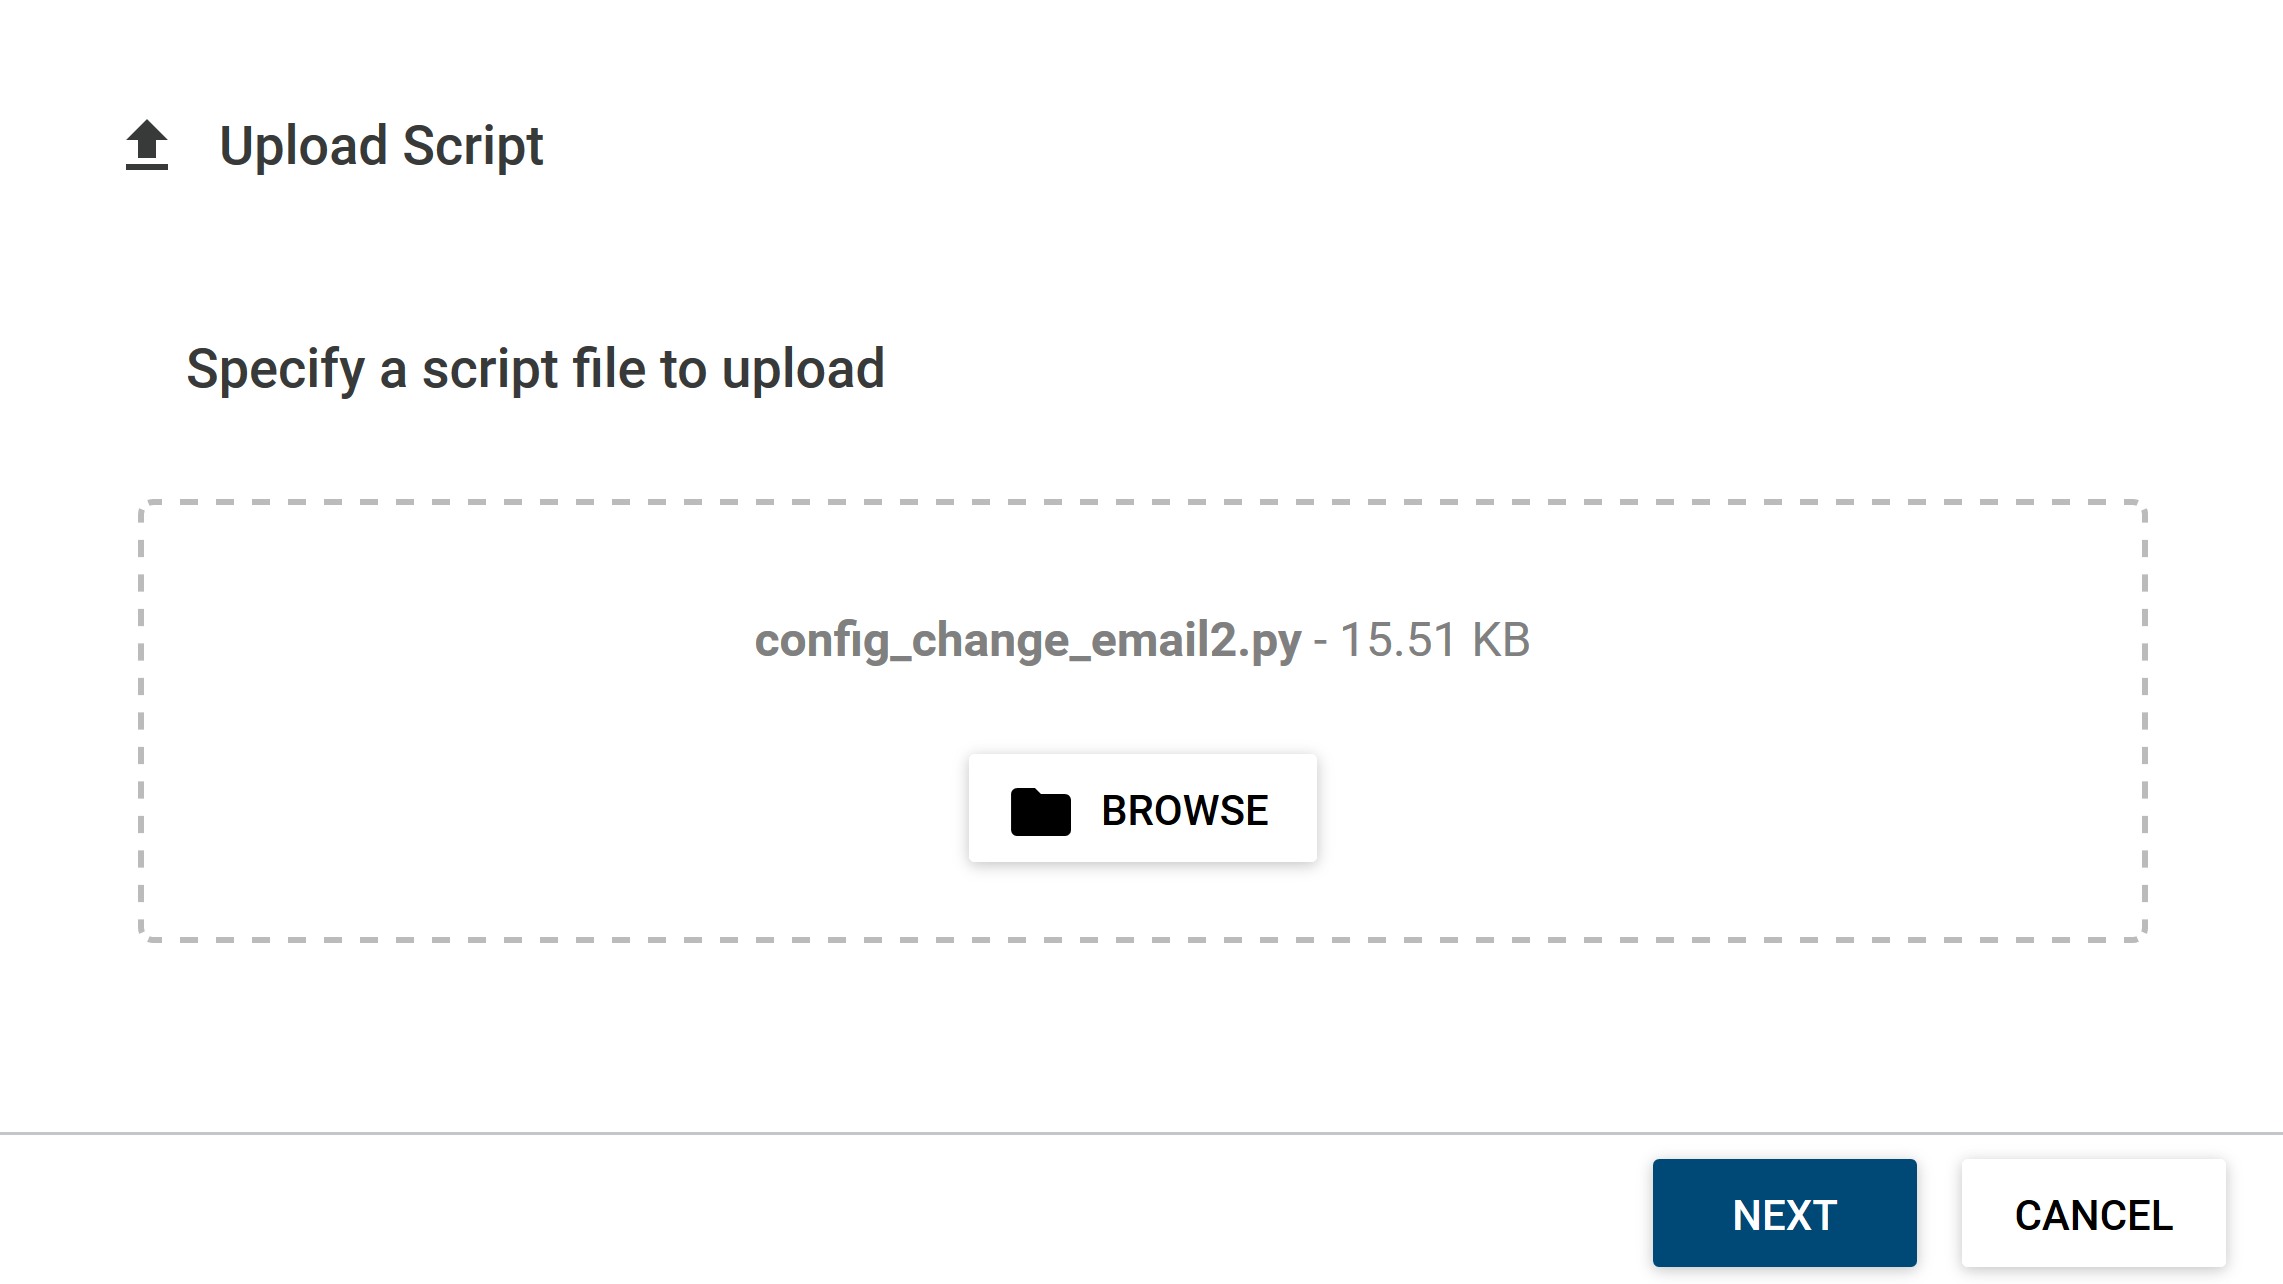 Upload confirmation page